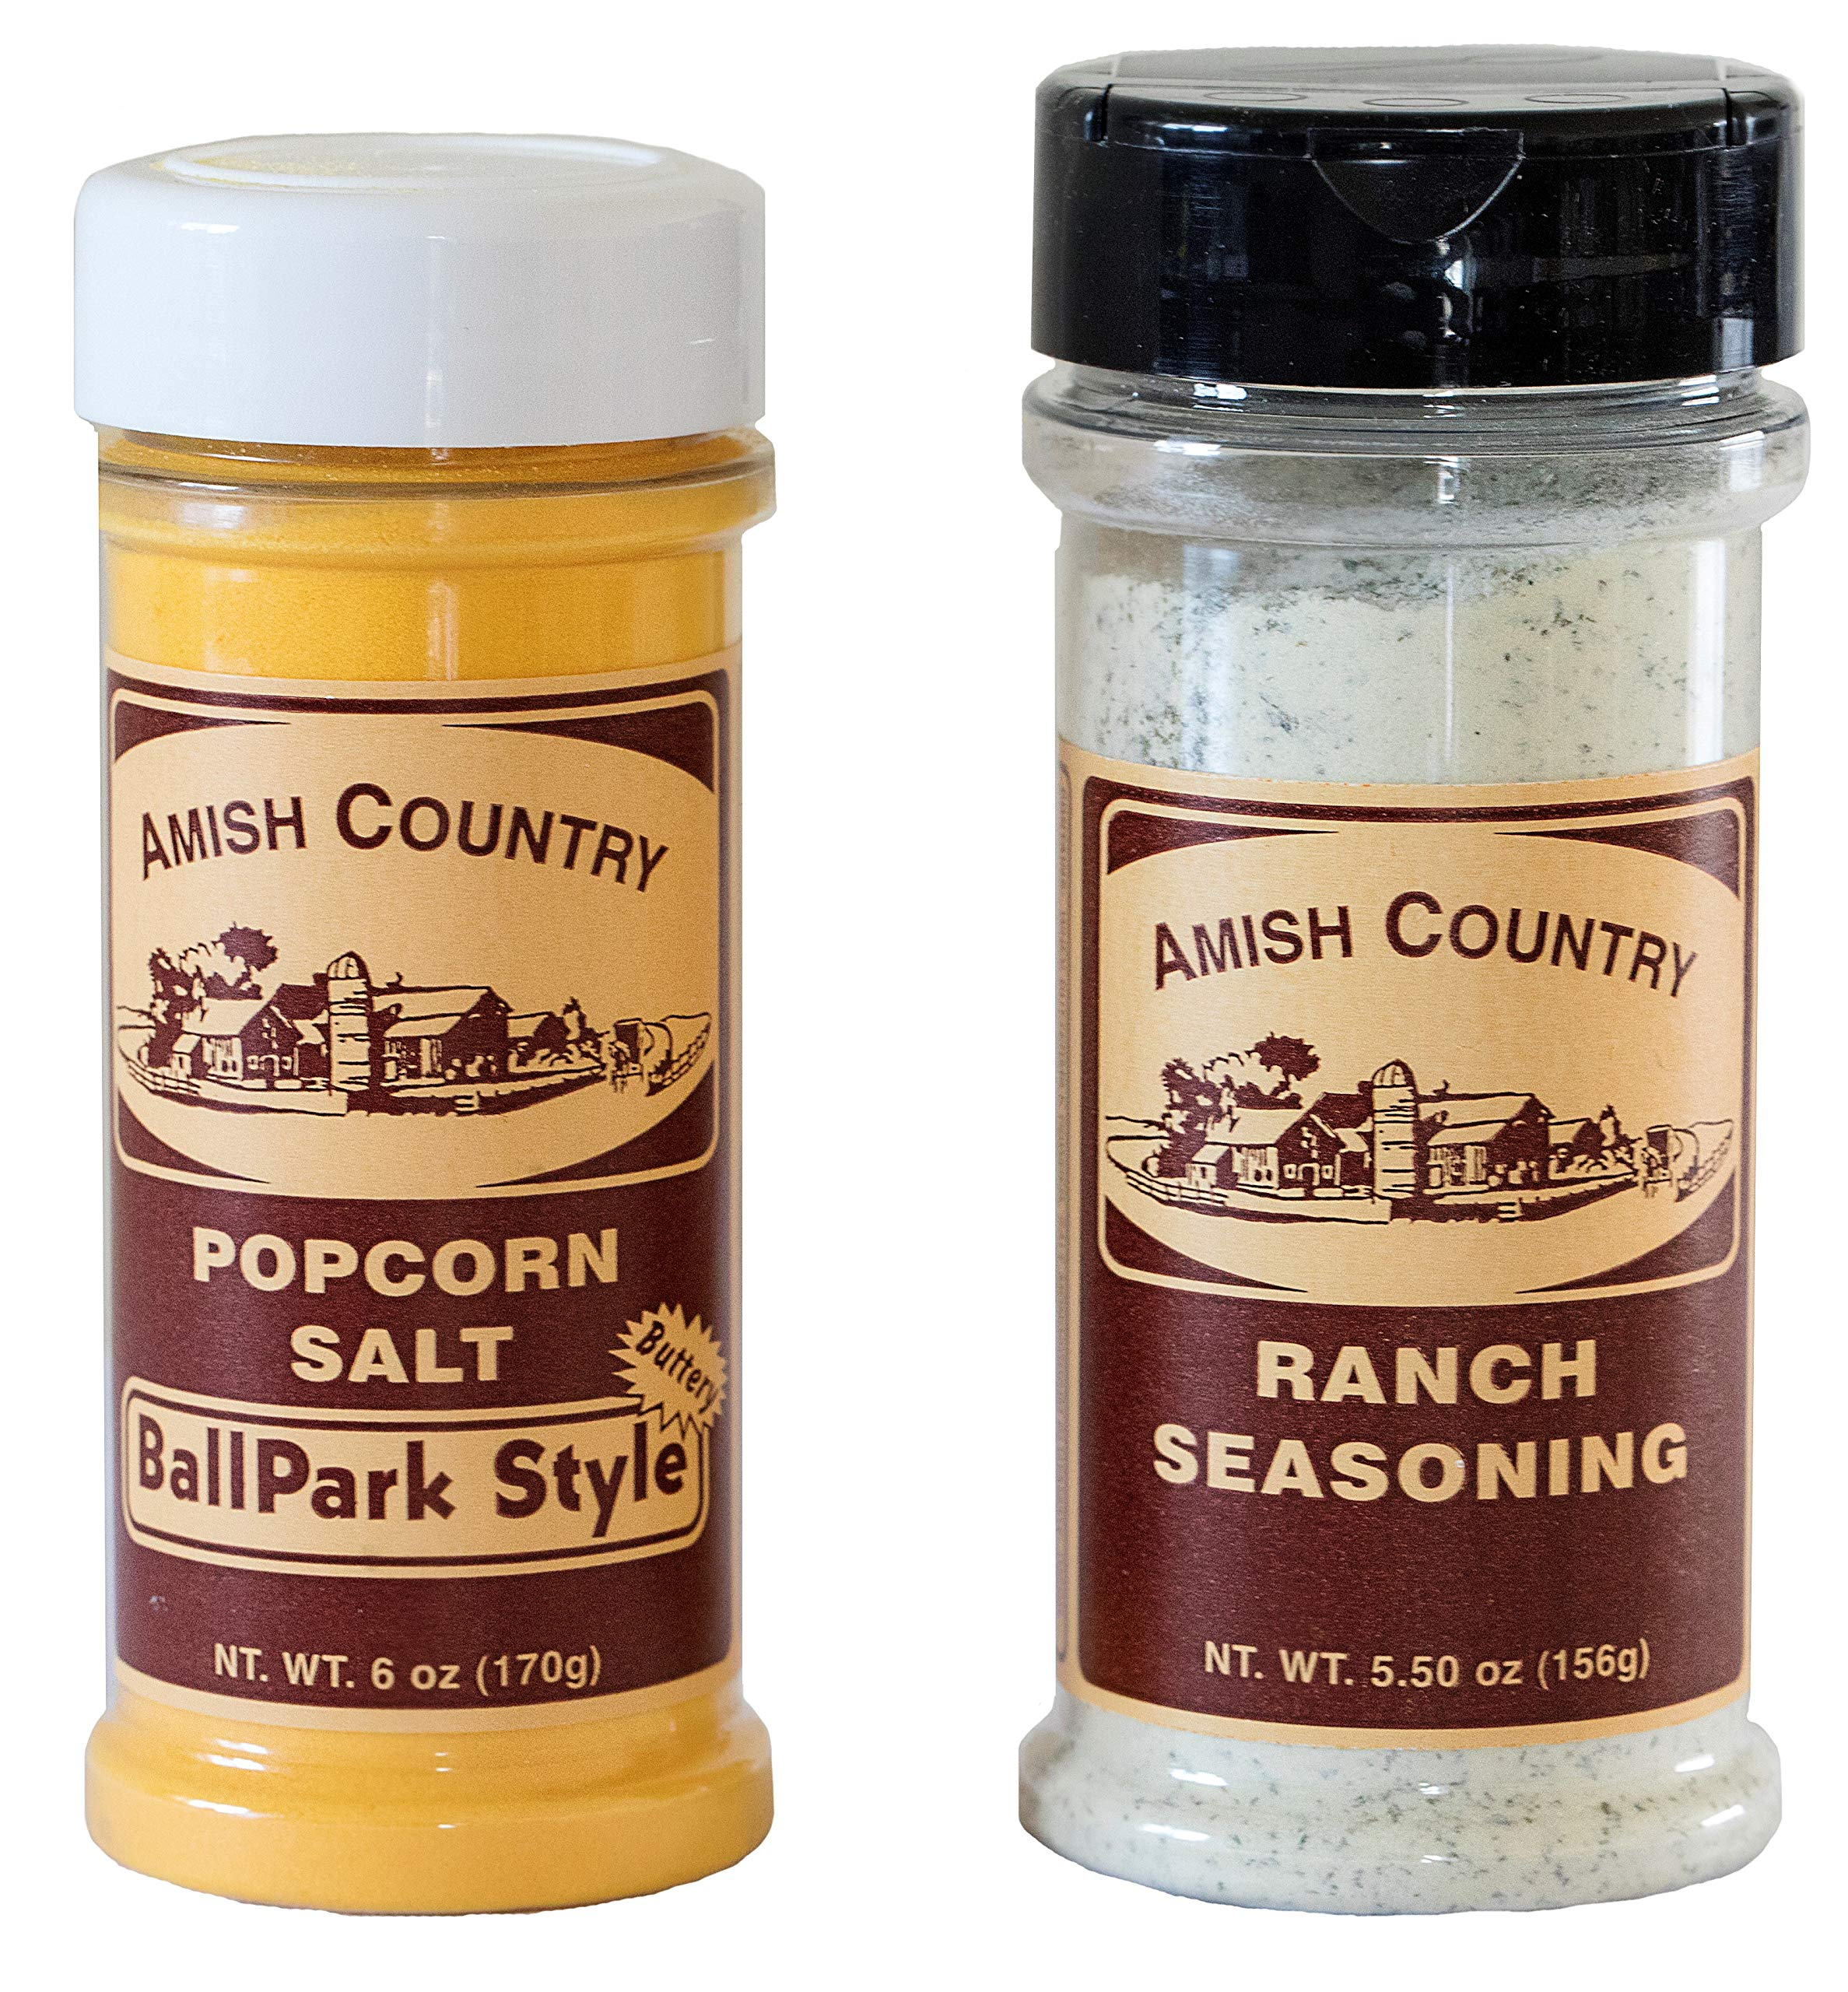 Amish Country Popcorn - BallPark Style ButterSalt (6 Oz) & Ranch (5.5 Oz) Popcorn Seasoning - Old Fashioned with Recipe Guide